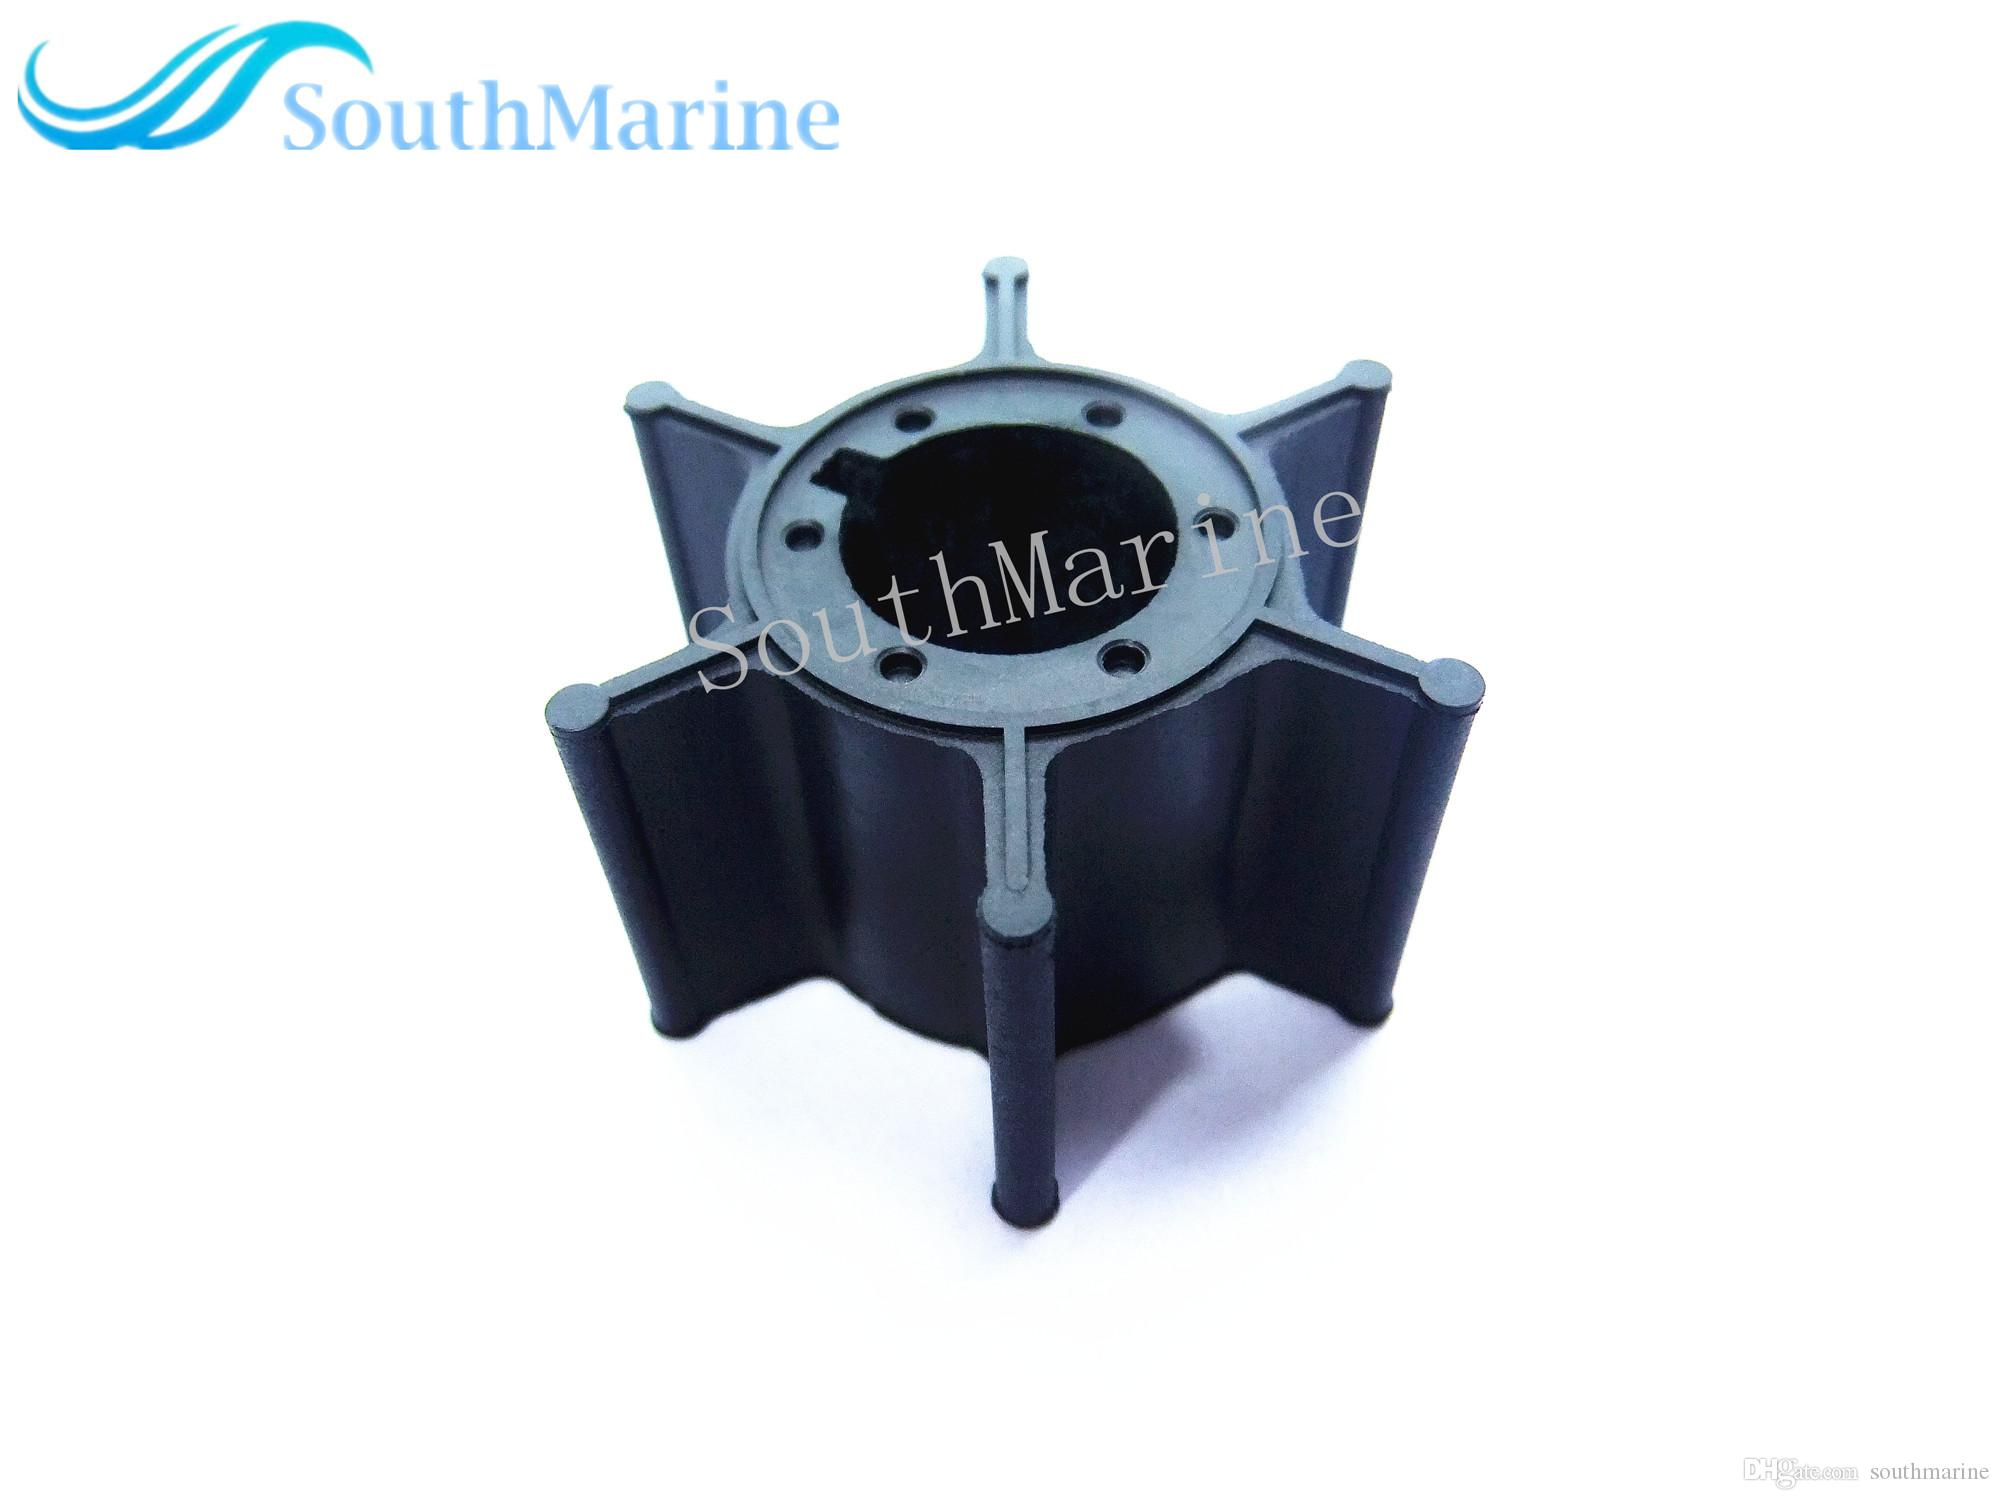 Boat Engine Water Pump Impeller for Yamaha 6HP 8HP 15HP Outboard Motor  662-44352-01 662-44352-01-00 47-95611M 47-81242M 18-3063 6A 6B 8B 1  662-44352 ...